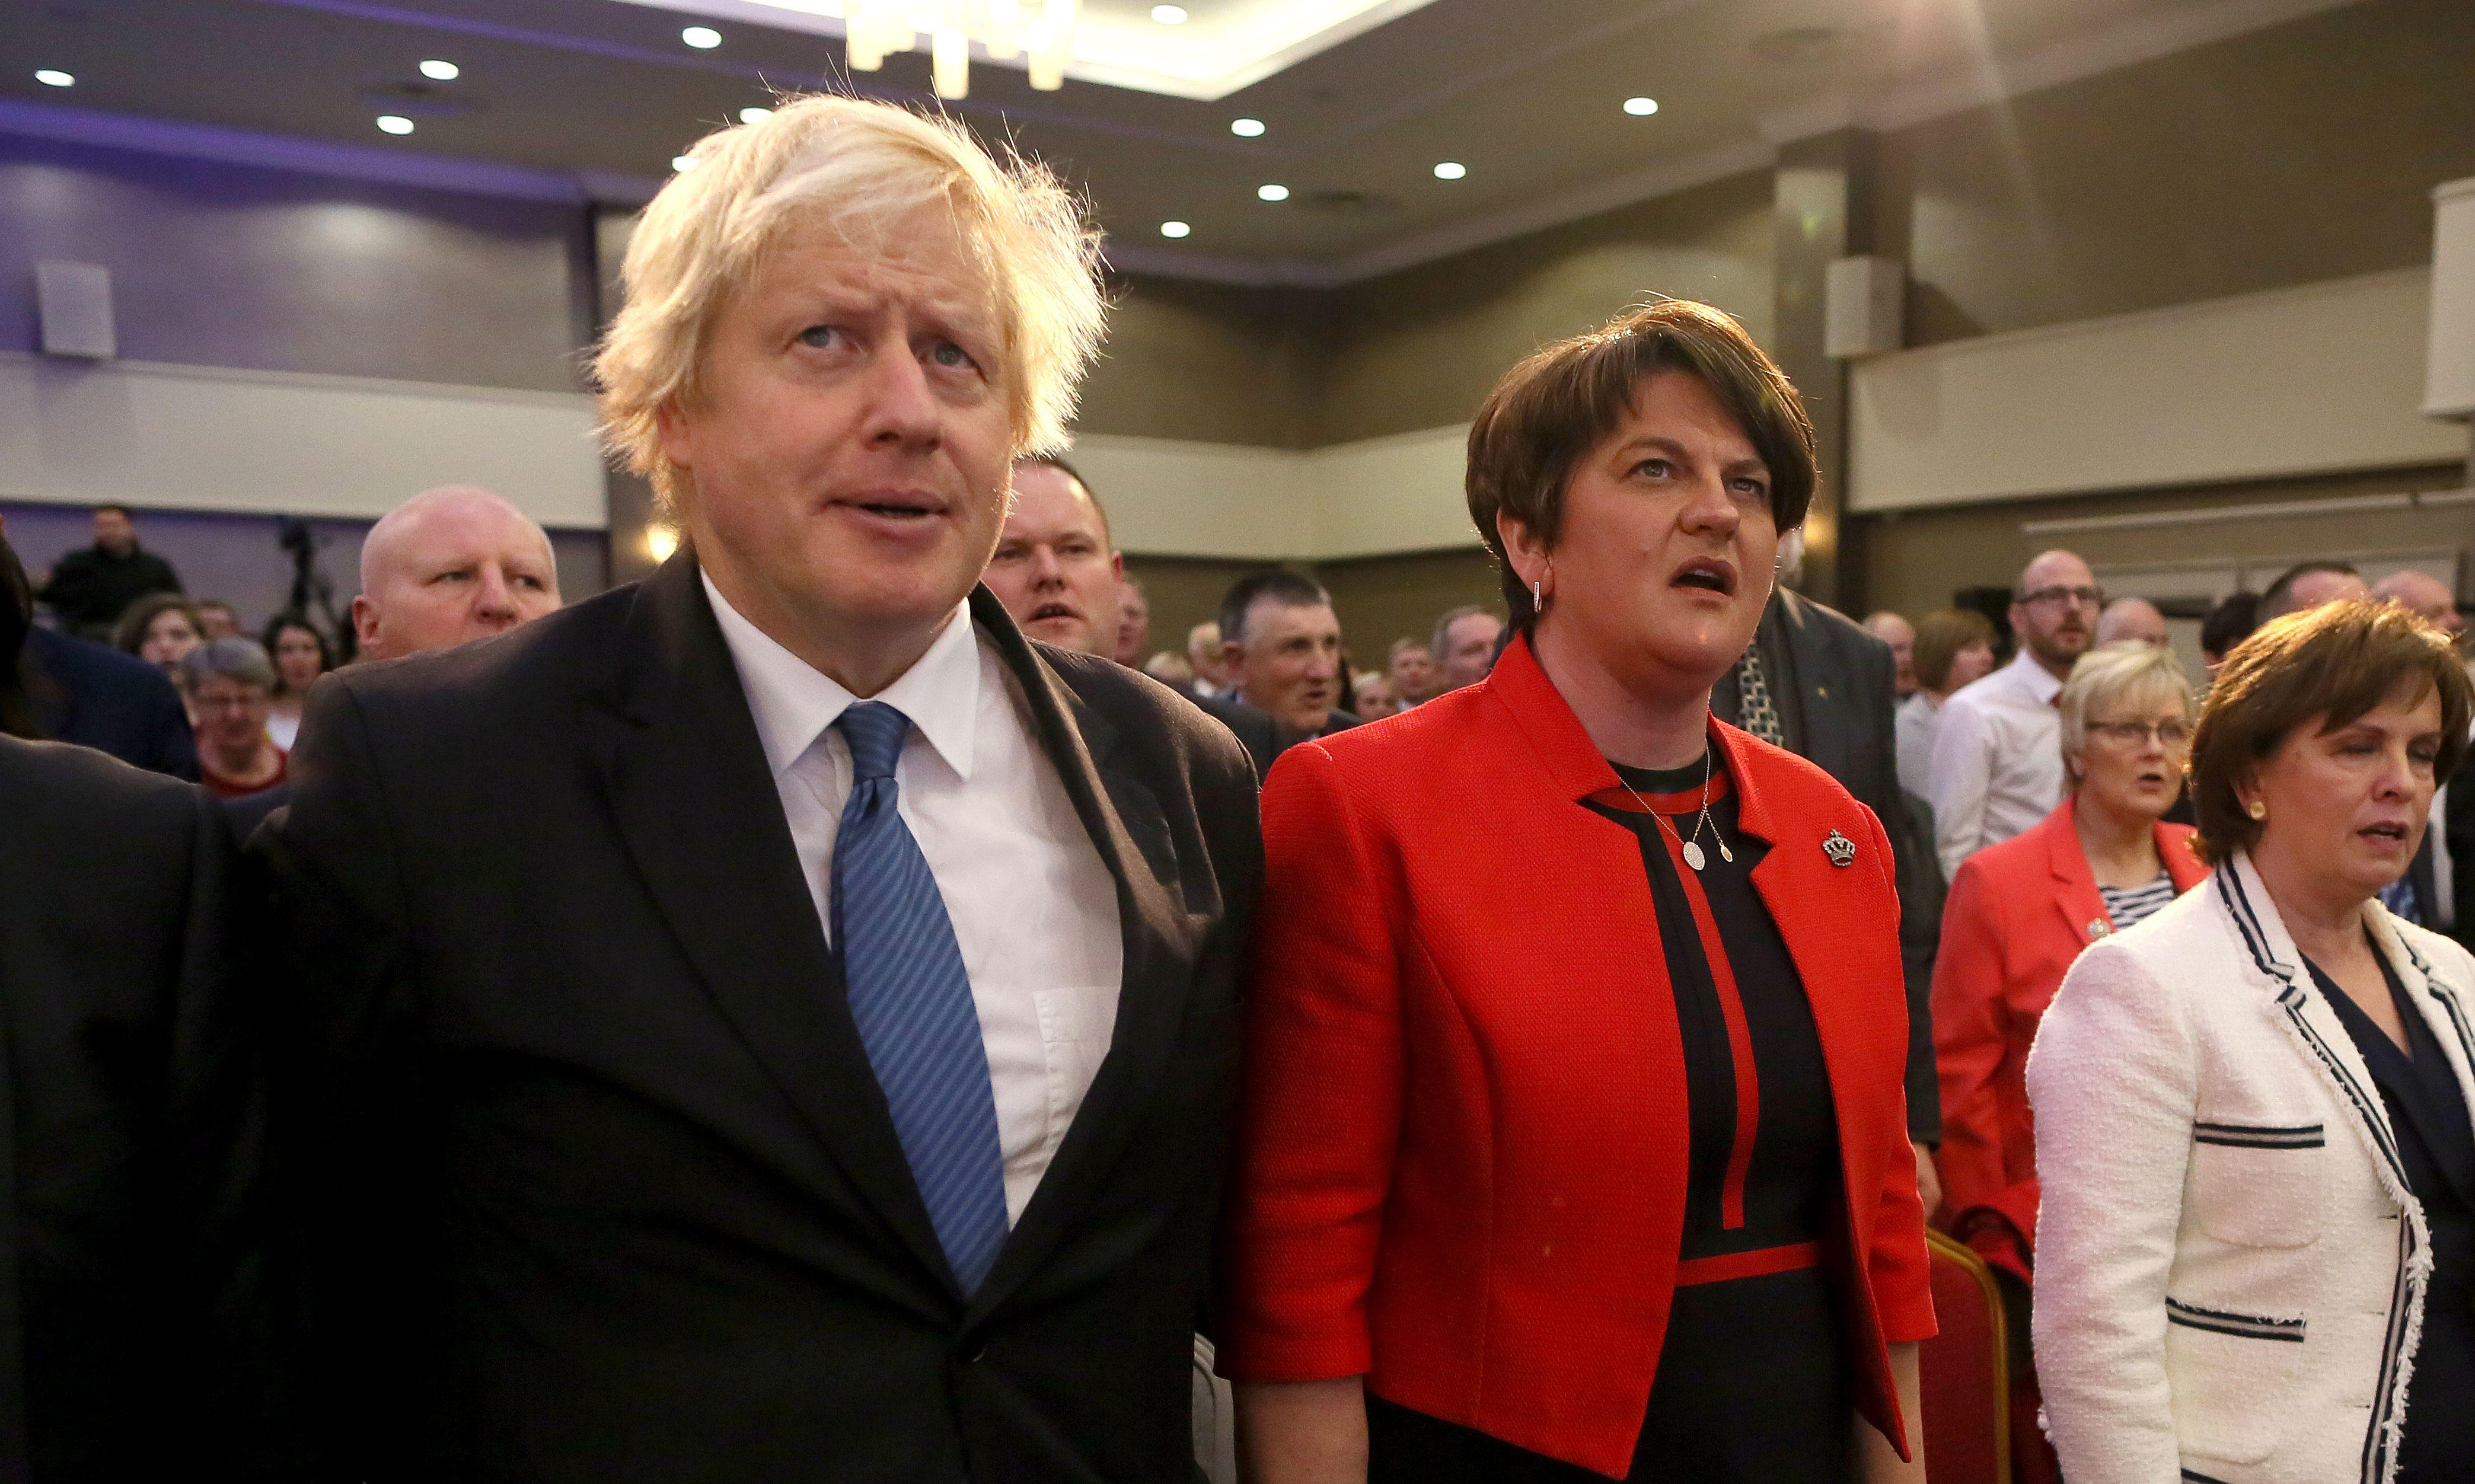 The DUP has been humiliated in Westminster – and in Northern Ireland too